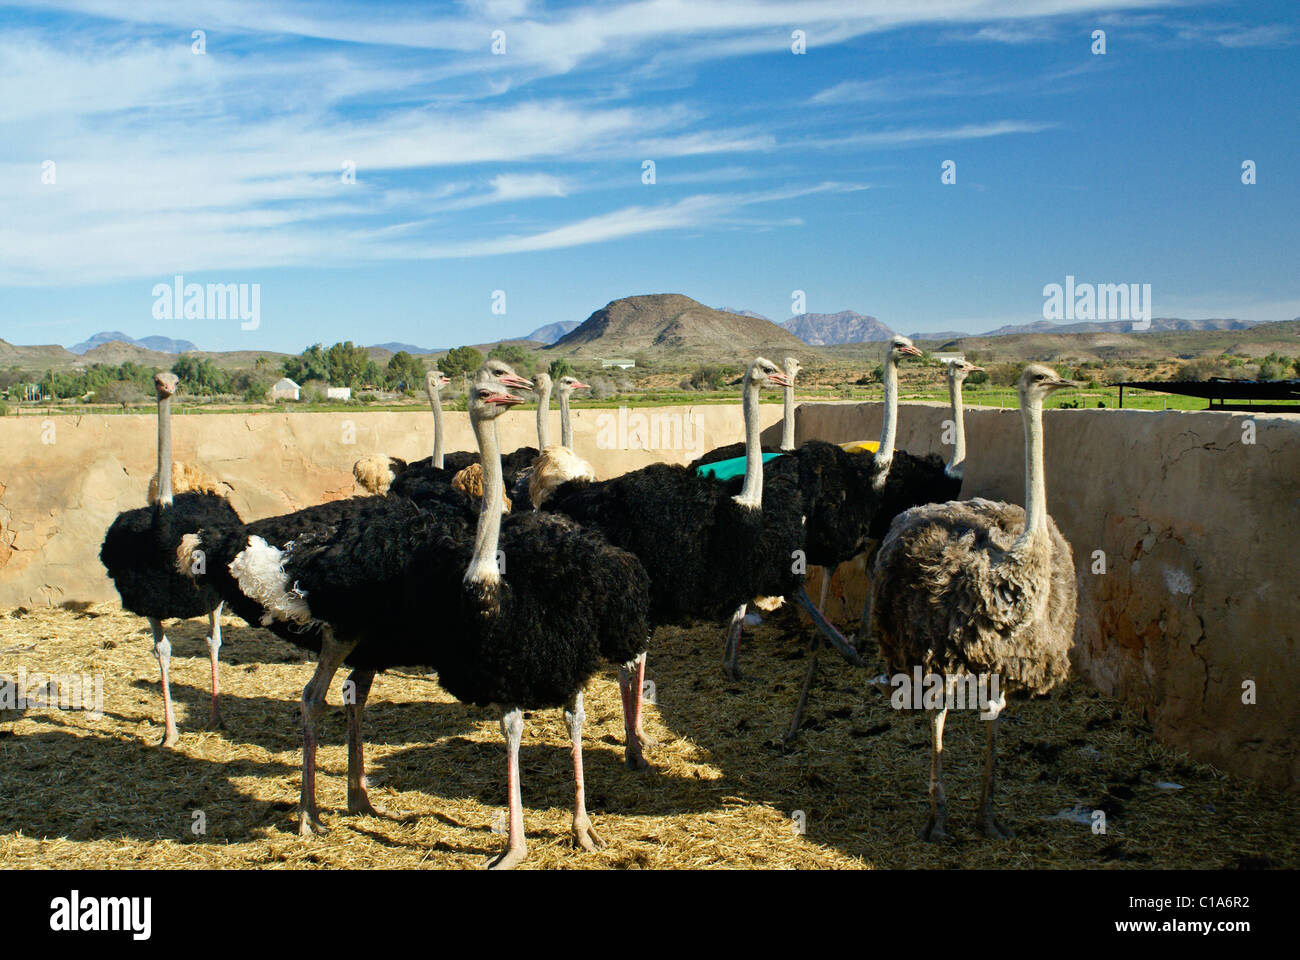 Ostriches at Highgate Ostrich Show Farm, Oudtshoorn, South Africa - Stock Image